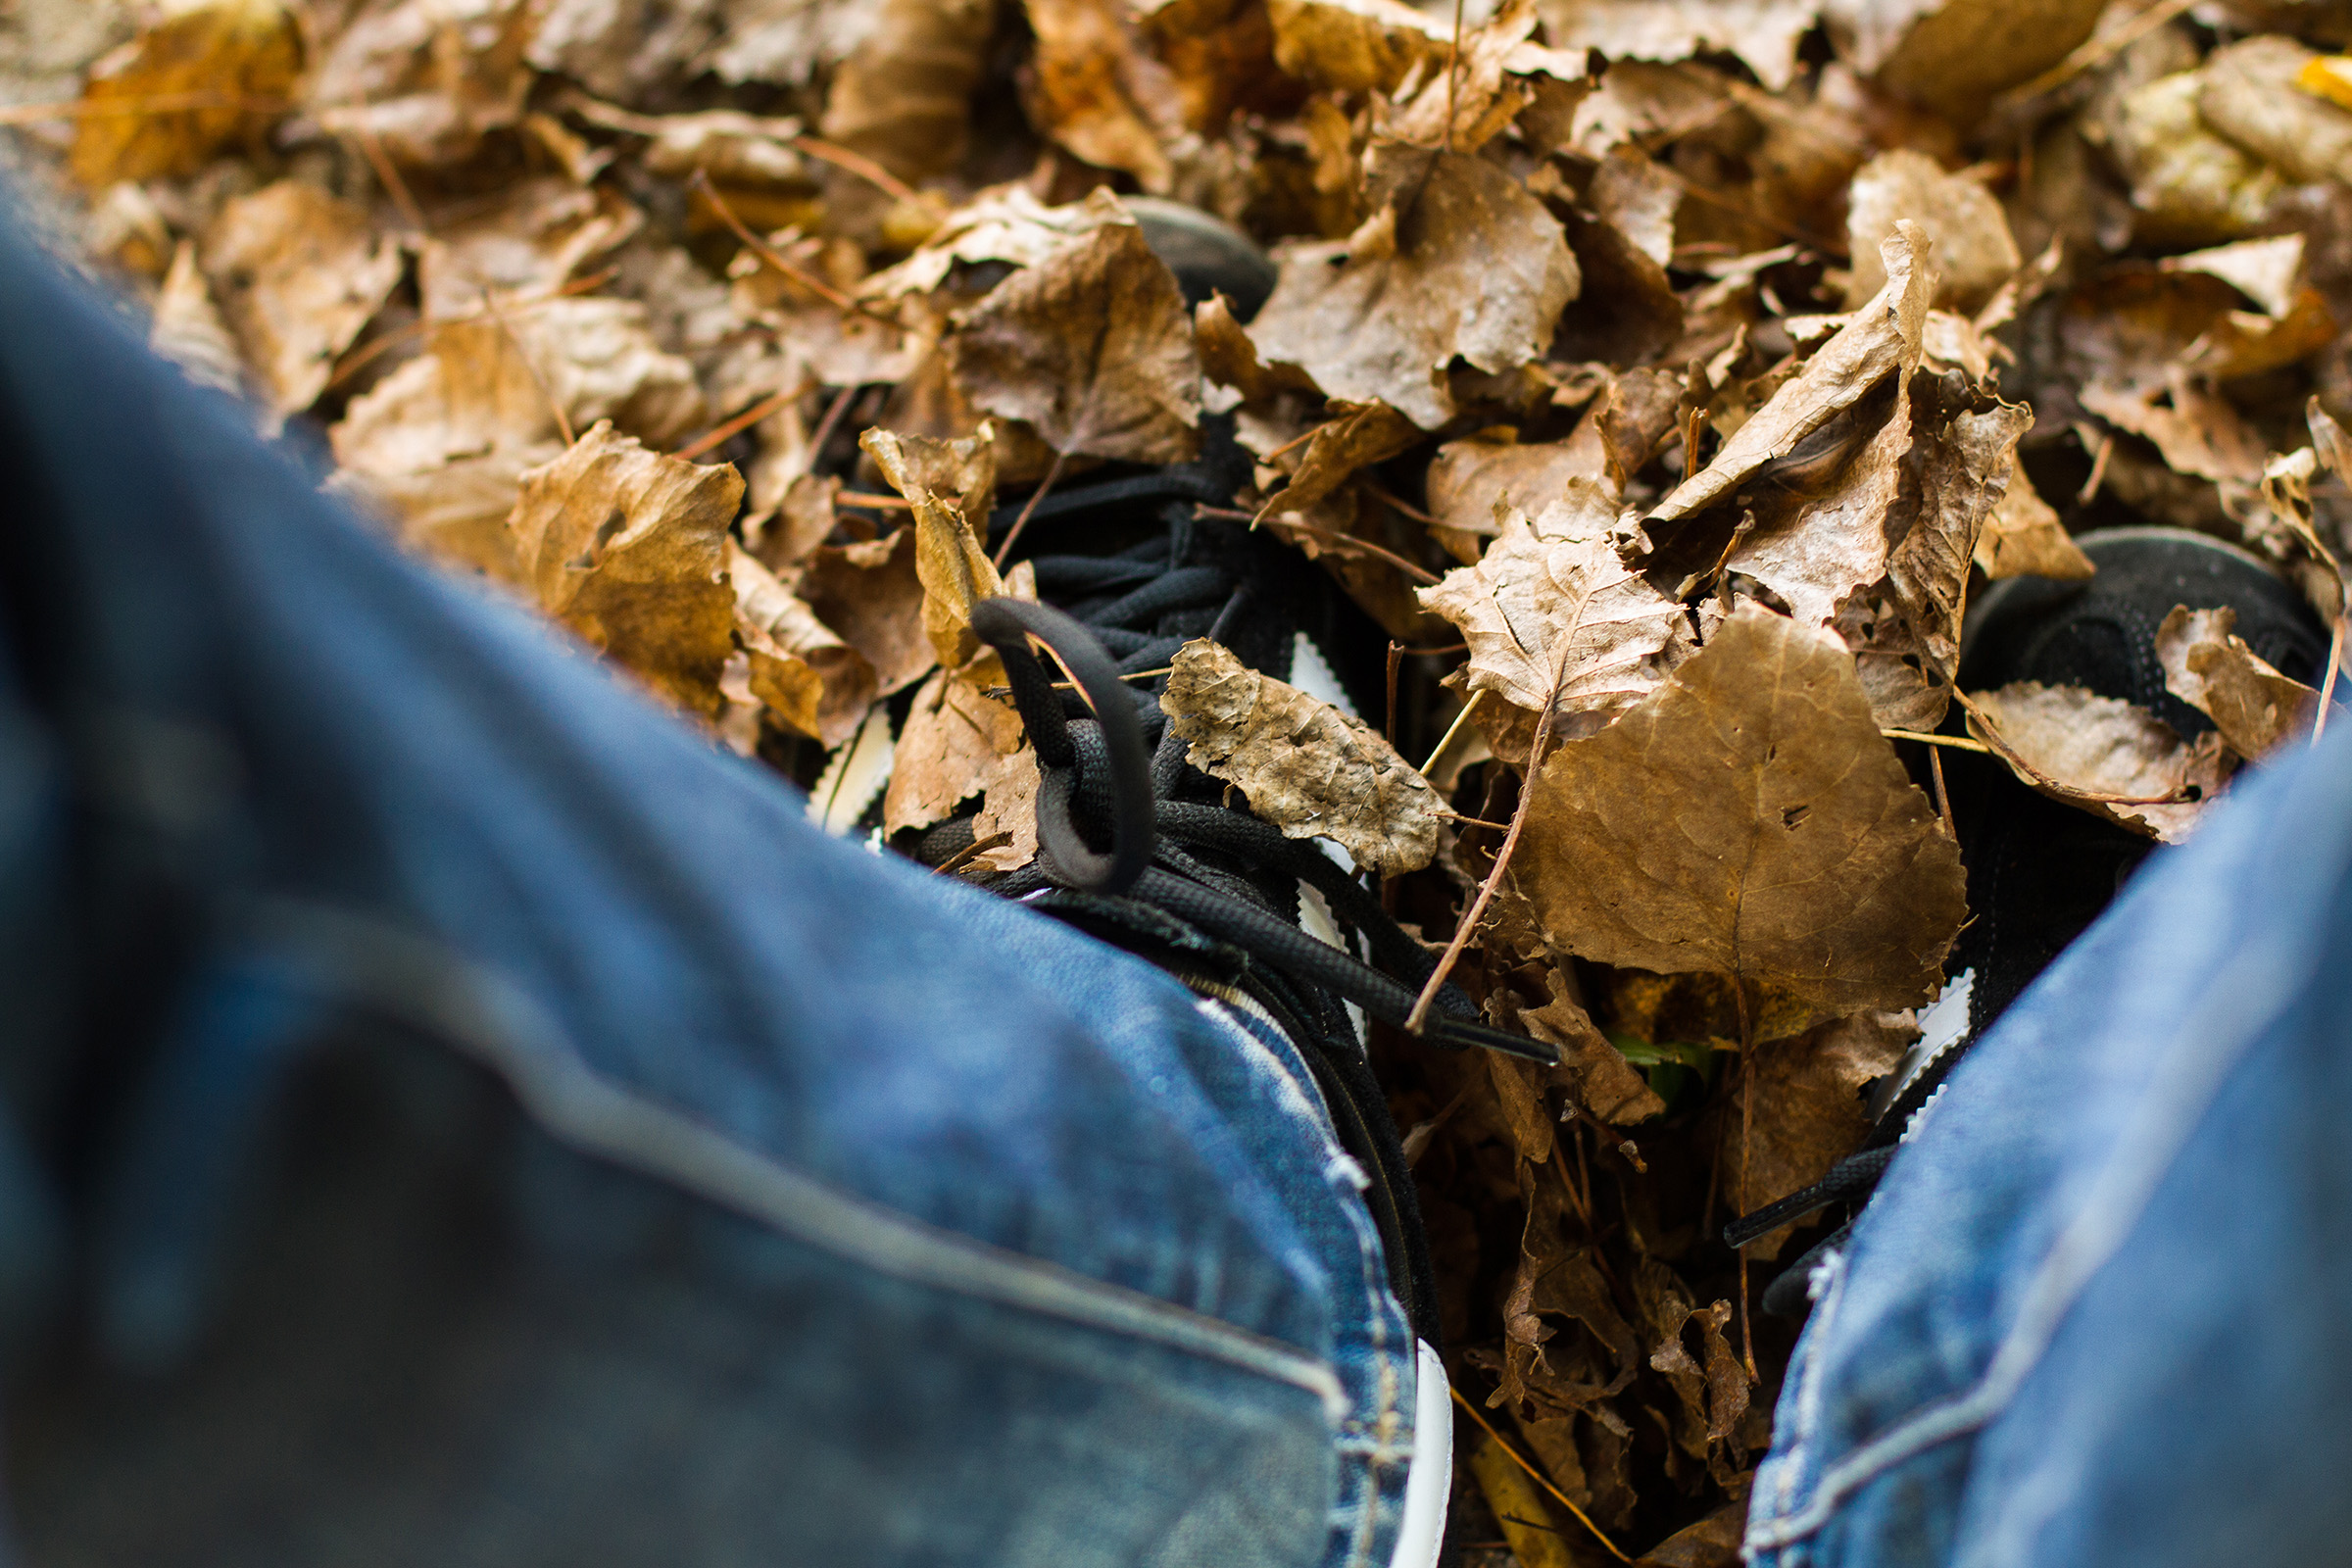 man, male, self, selfpic, selfportrait, leafs, autumn © André Schunert